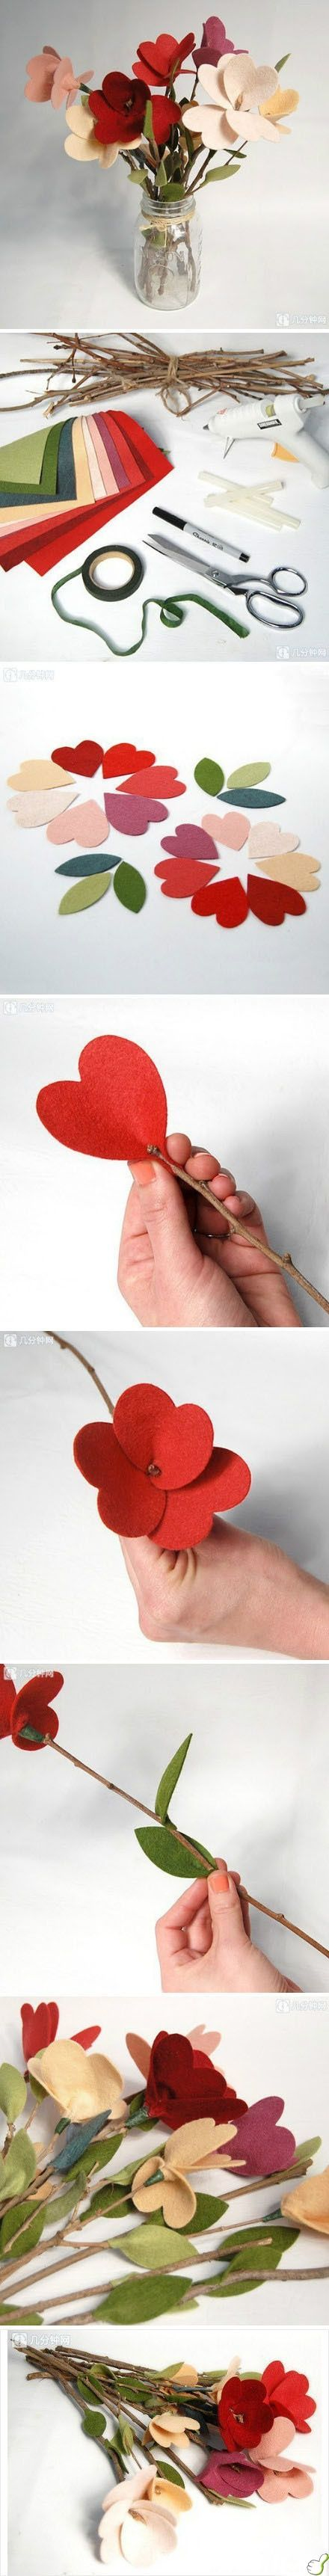 Making hear flowers are really fun and you can really make these pop... More